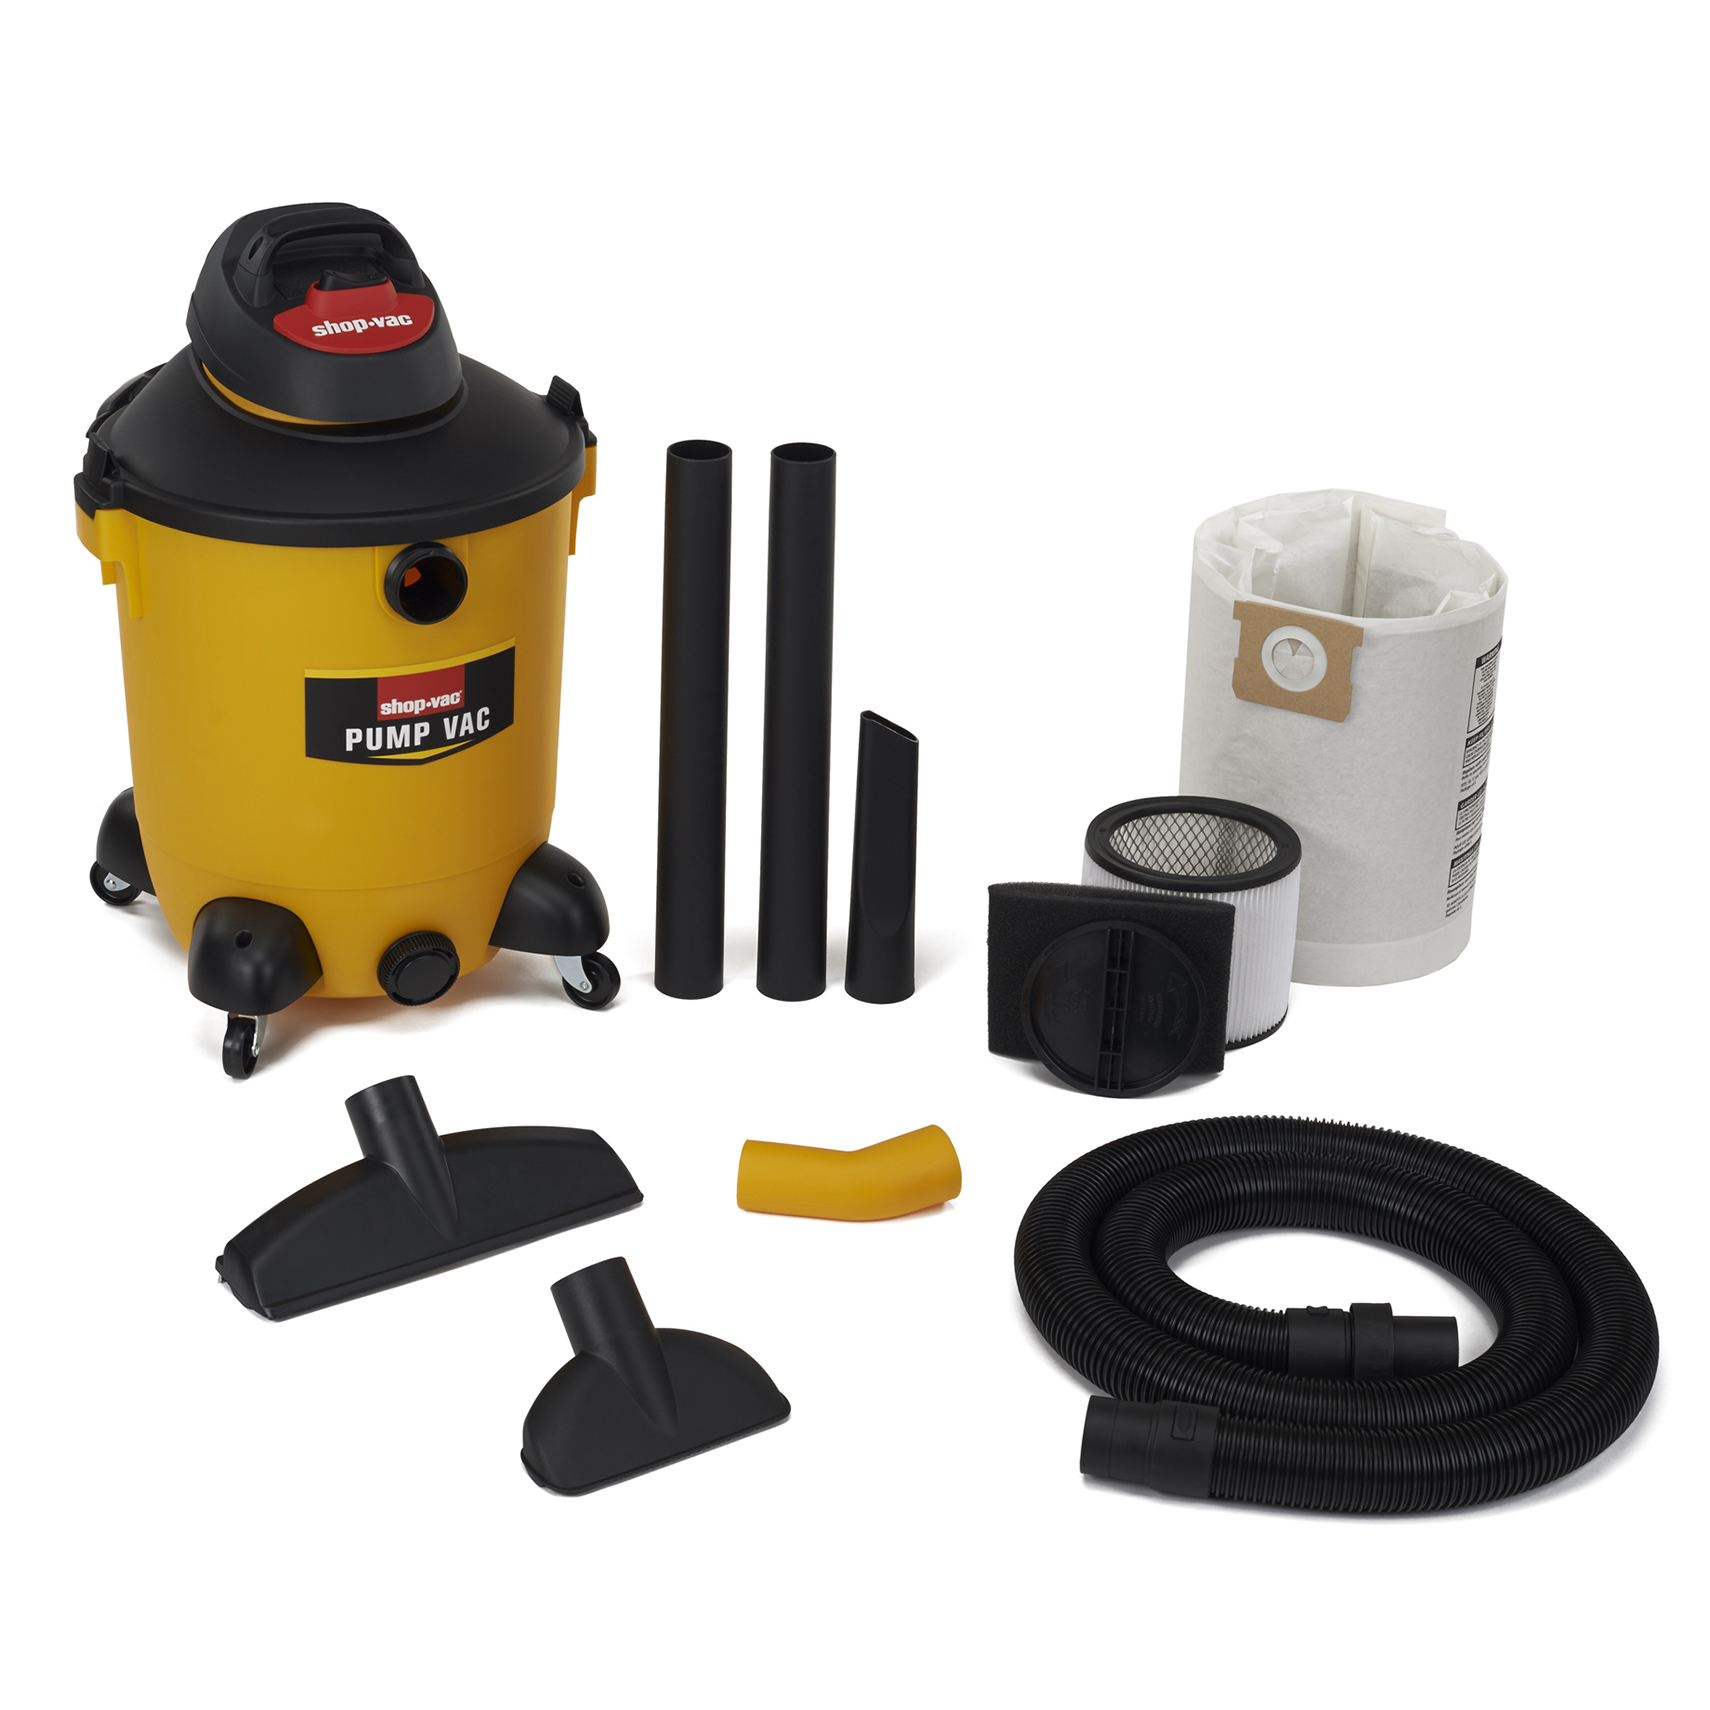 Shop Vac 582-14-00 14 Gallon 6 PHP Wet/Dry Pump Vacuum